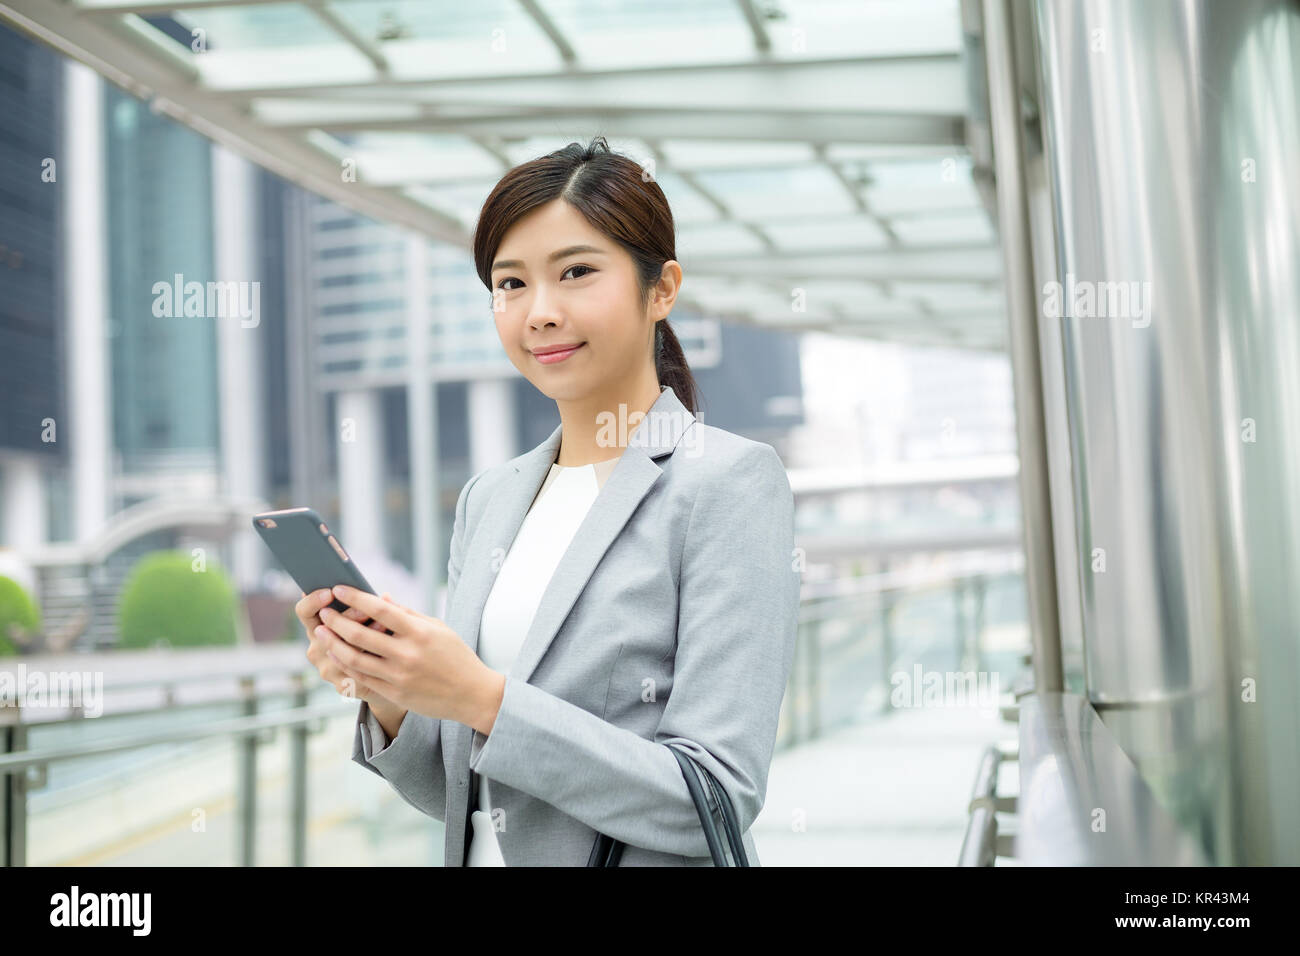 Business woman read on mobile phone - Stock Image